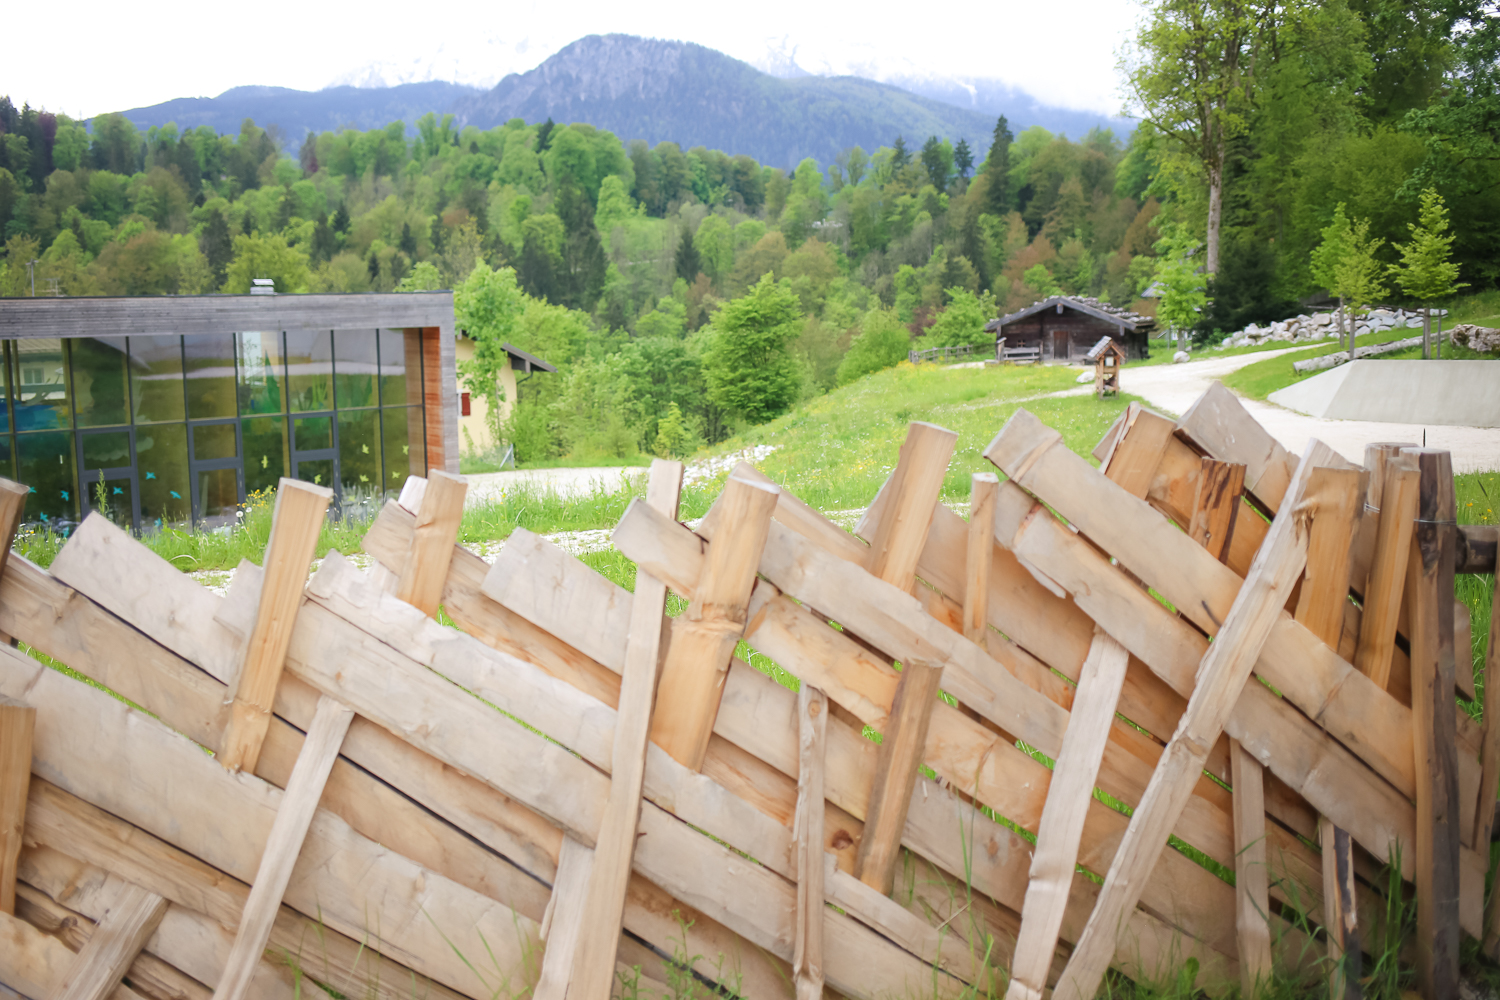 A nature-based playground and environmental center in the alps of Salzburg, Austria.